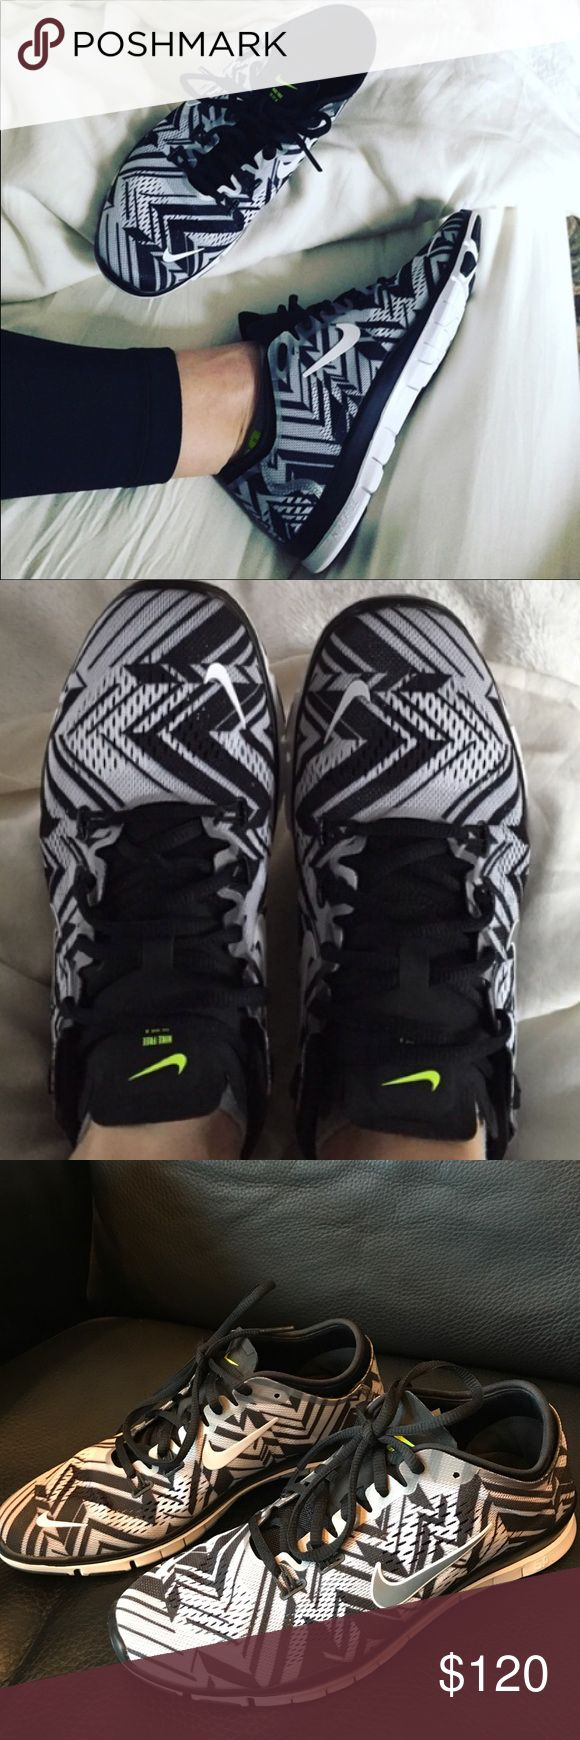 NIKE FREE 5.0 TR FIT 4 AZTEC SHOE SIZE 8 WORN ONCE 👟 PRICE FIRM UNLESS BUNDLED. WILL COME IN A BOX BUT NOT ORIGINAL BOX❤️NIKE FREE 5.0 TR FIT 4 AZTEC SHOE SIZE 8 . NEXT TO NEW ❤️WORN ONCE INSIDE❤️ SUPER HARD TO FIND. I JUST HAD TO HAVE THEM BUT NEVER WEAR THEM. NO STAINS OR MARKS. Shoes Athletic Shoes